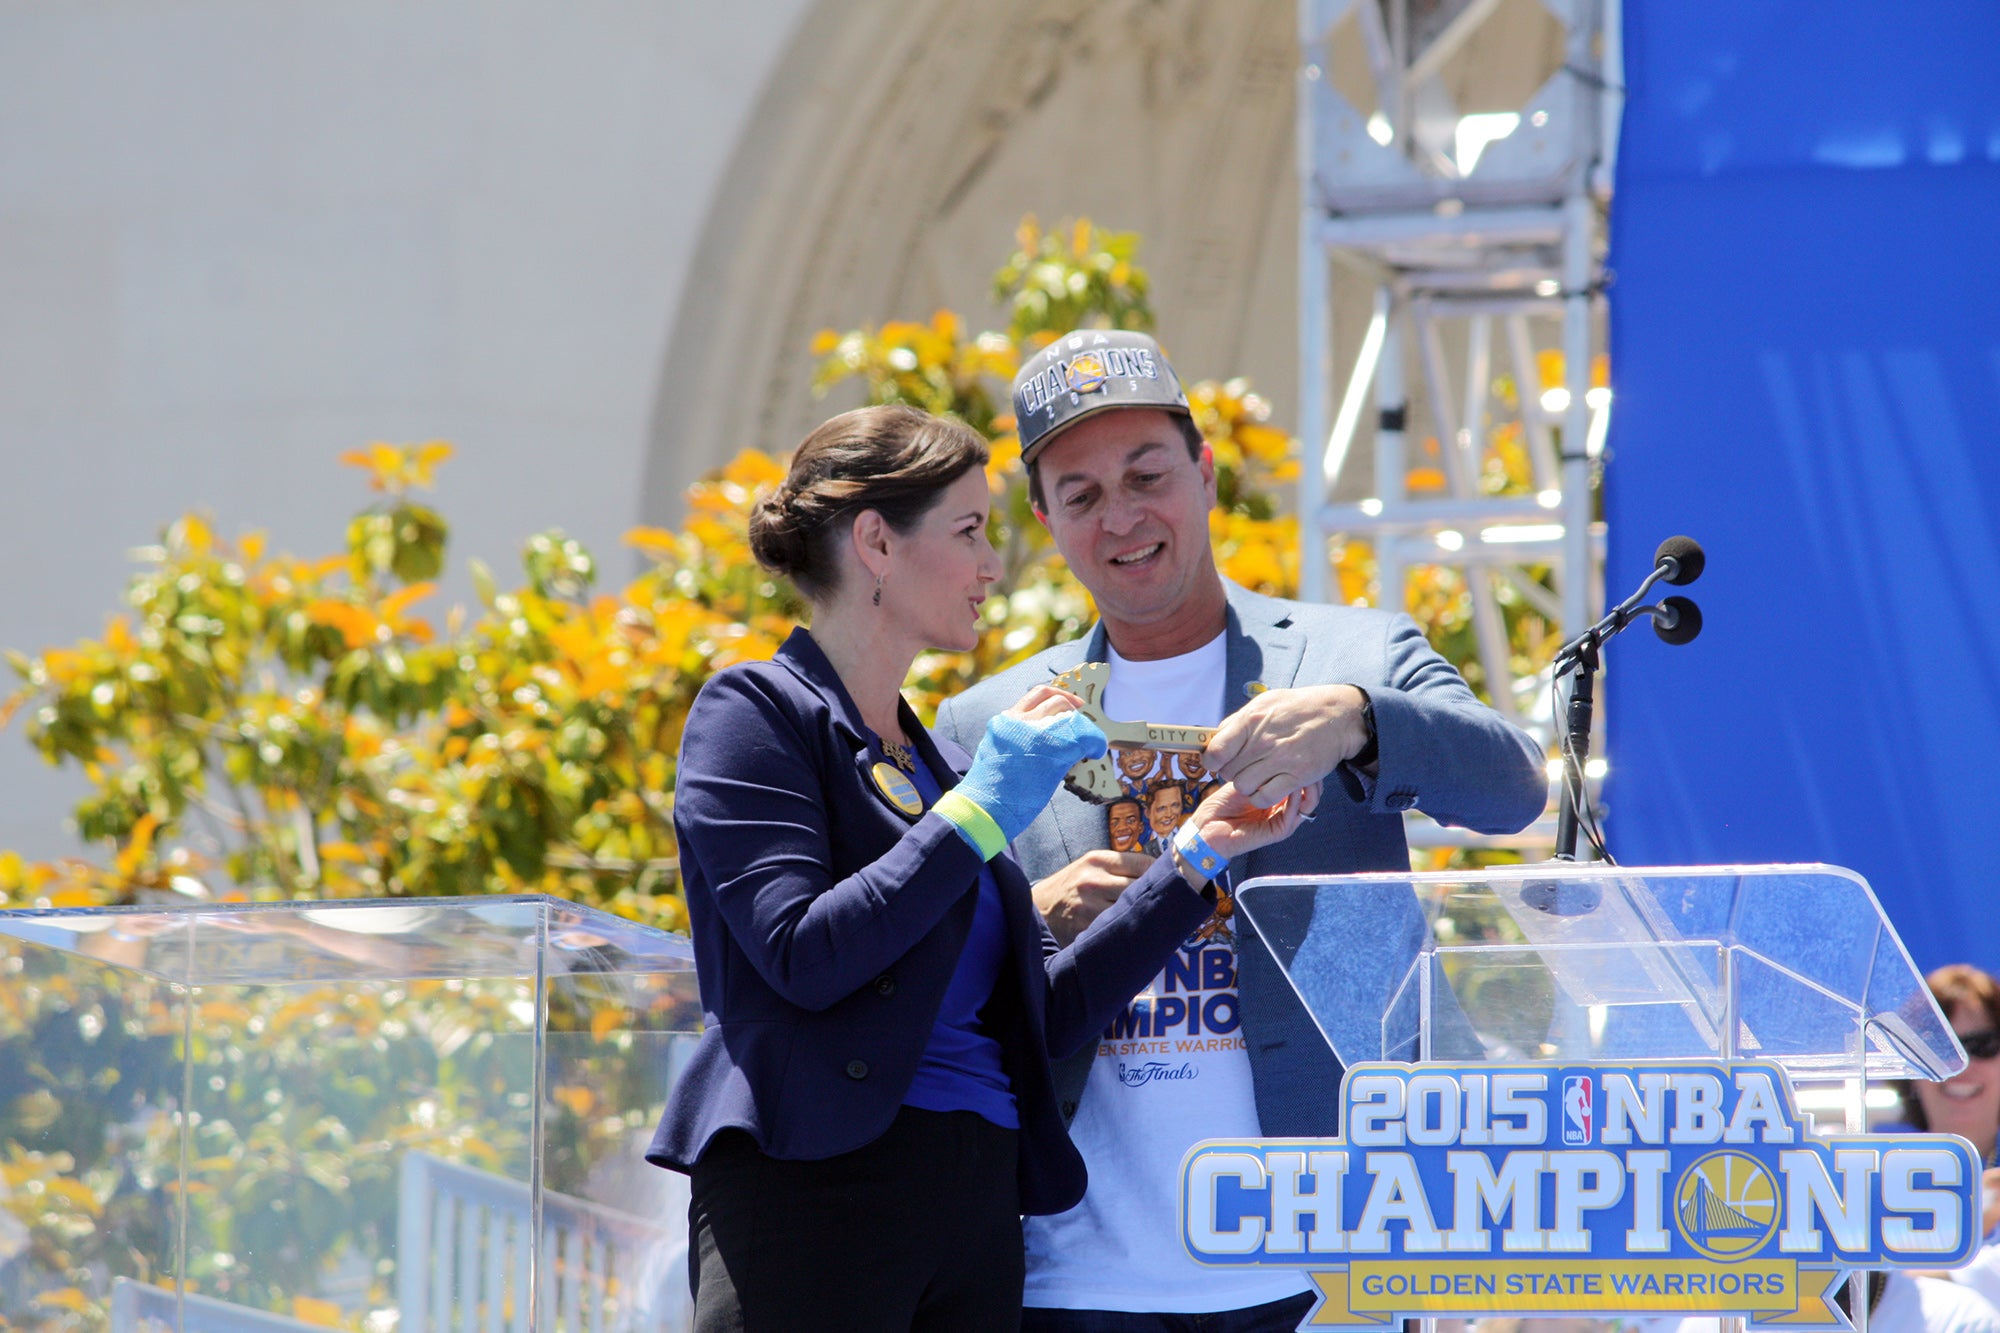 A highlight of the festivities was when Oakland Mayor Schaaf presented a key to her city to Warriors owner Joe Lacob.